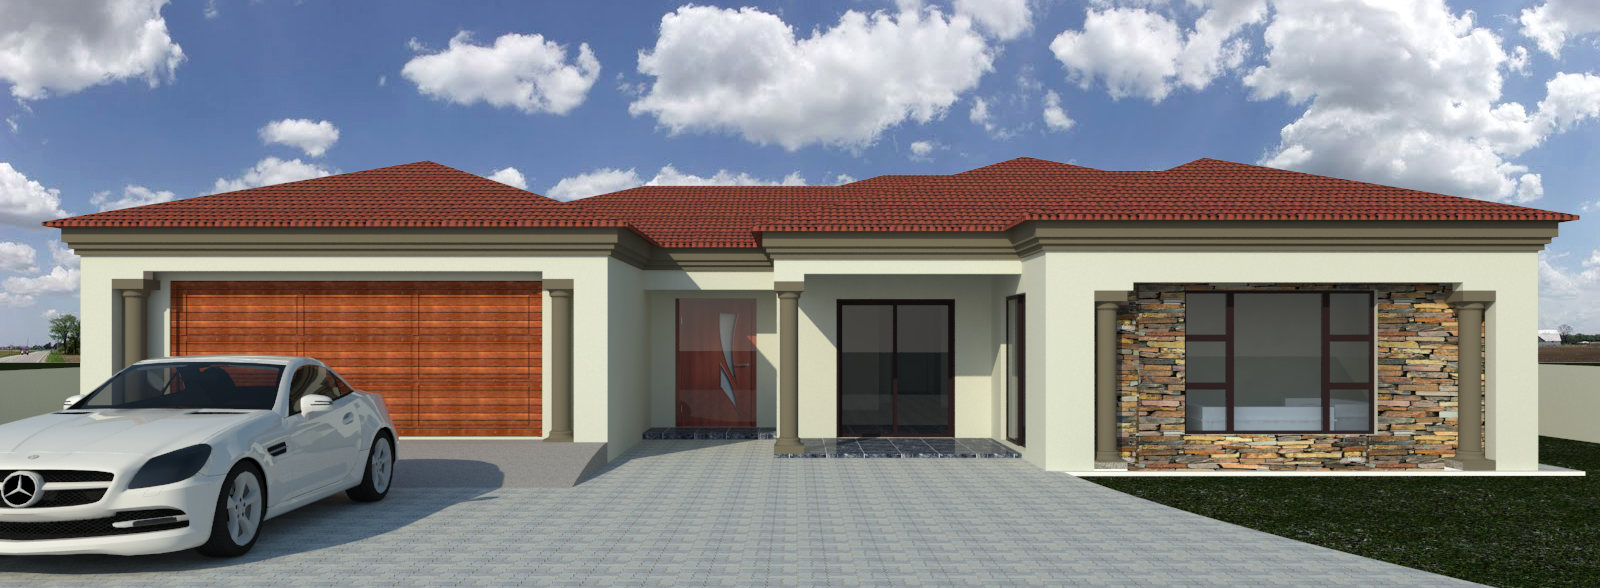 My house plans south africa my house plans most affordable way to build your home